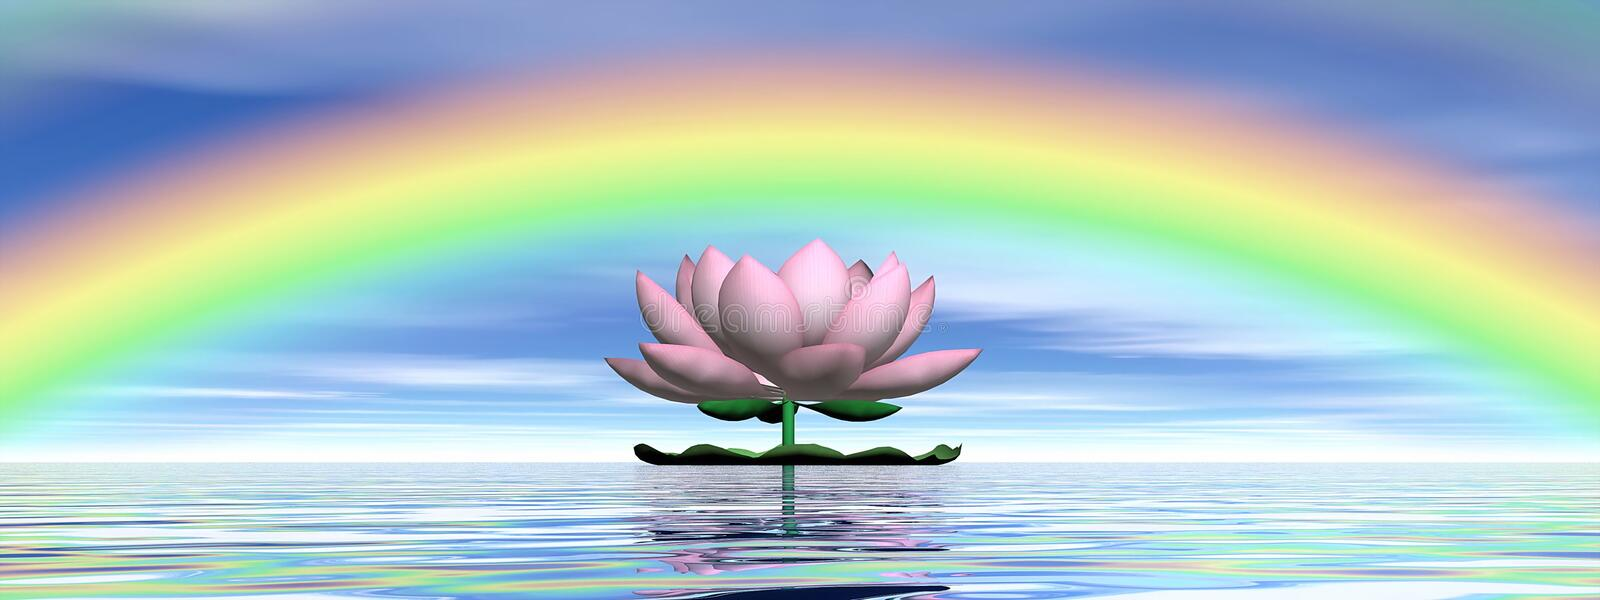 Lotus flower under rainbow - 3D render stock illustration